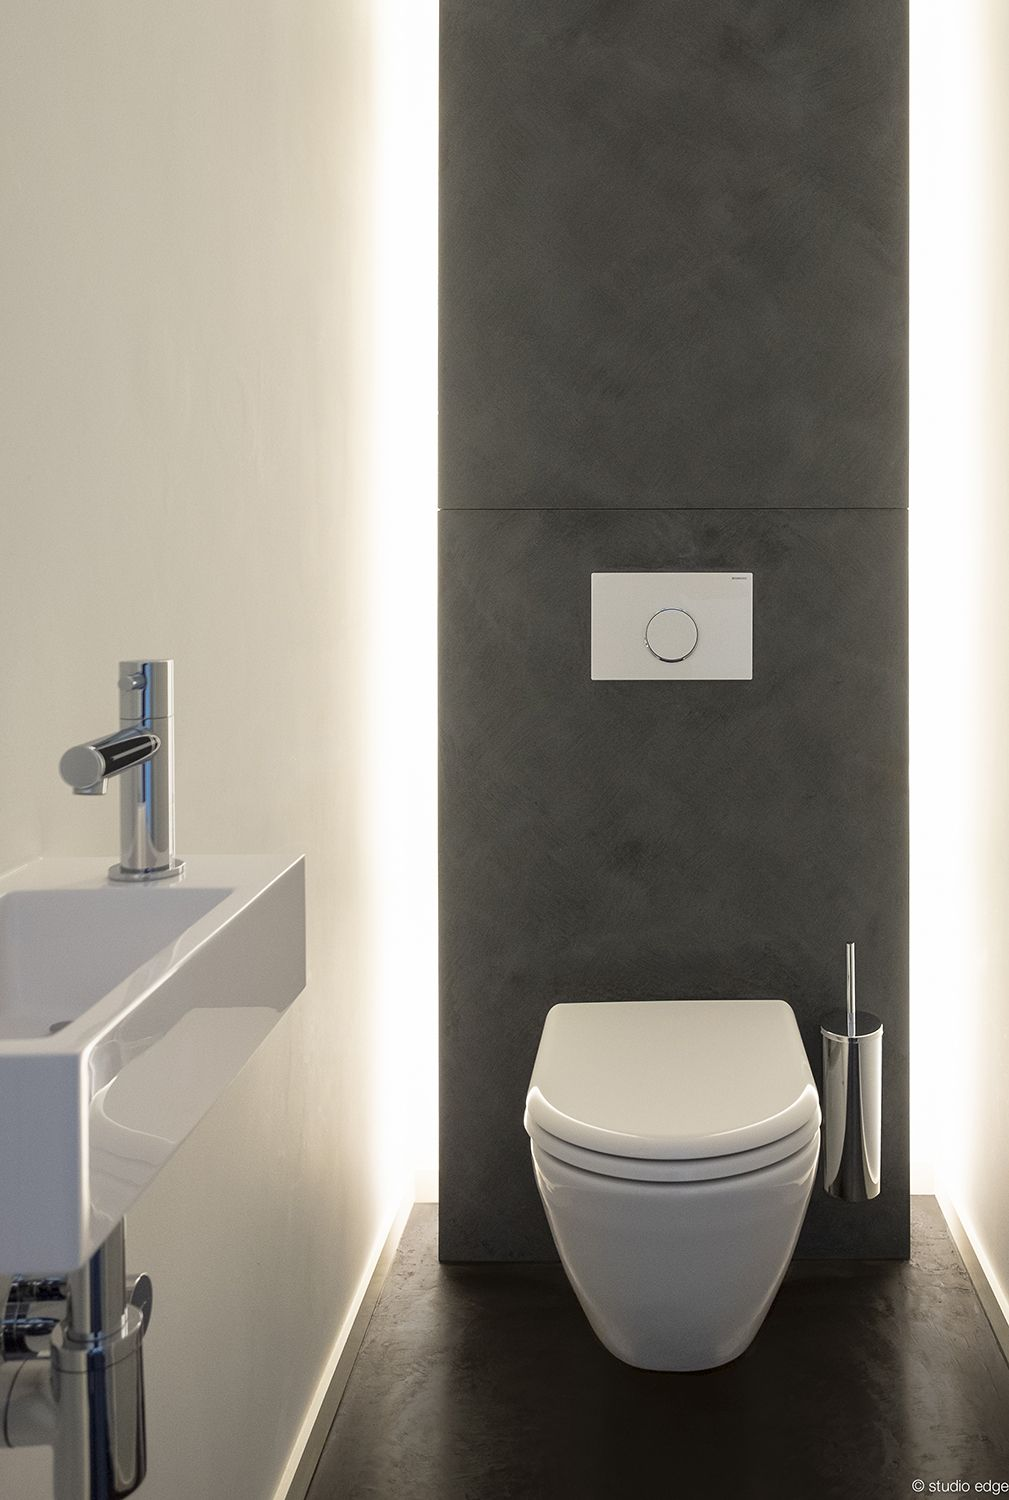 studio edge • interior design • design of a toilet with indirect lighting • www.studio-edge.be